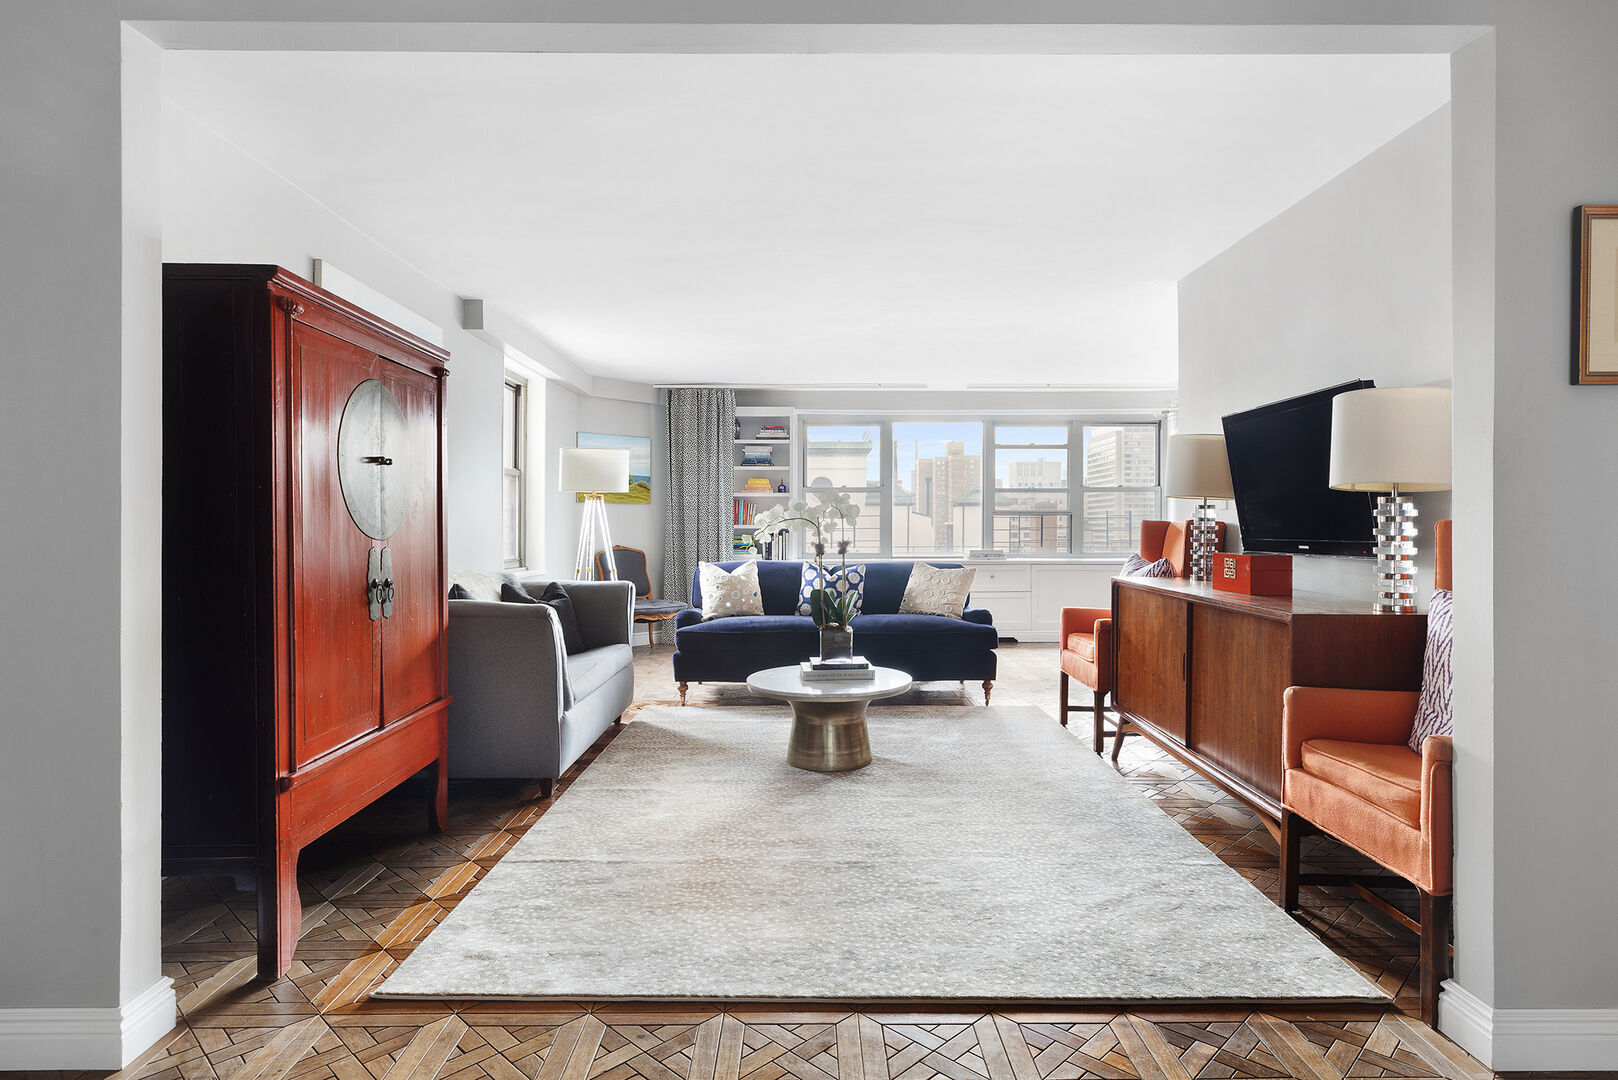 Apartment for sale at 525 East 86th Street, Apt 21-D